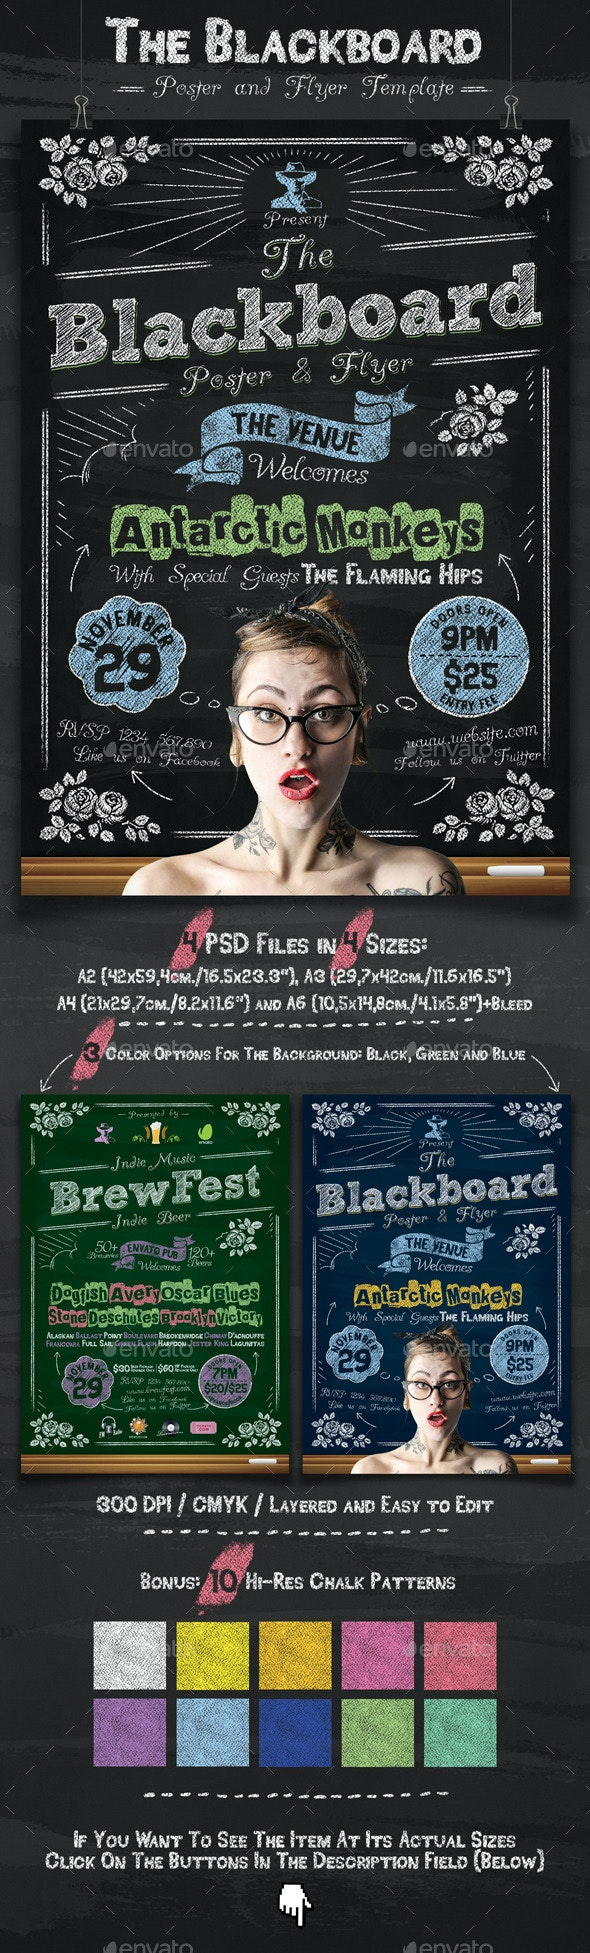 The Blackboard Poster and Flyer Template - Events Flyers